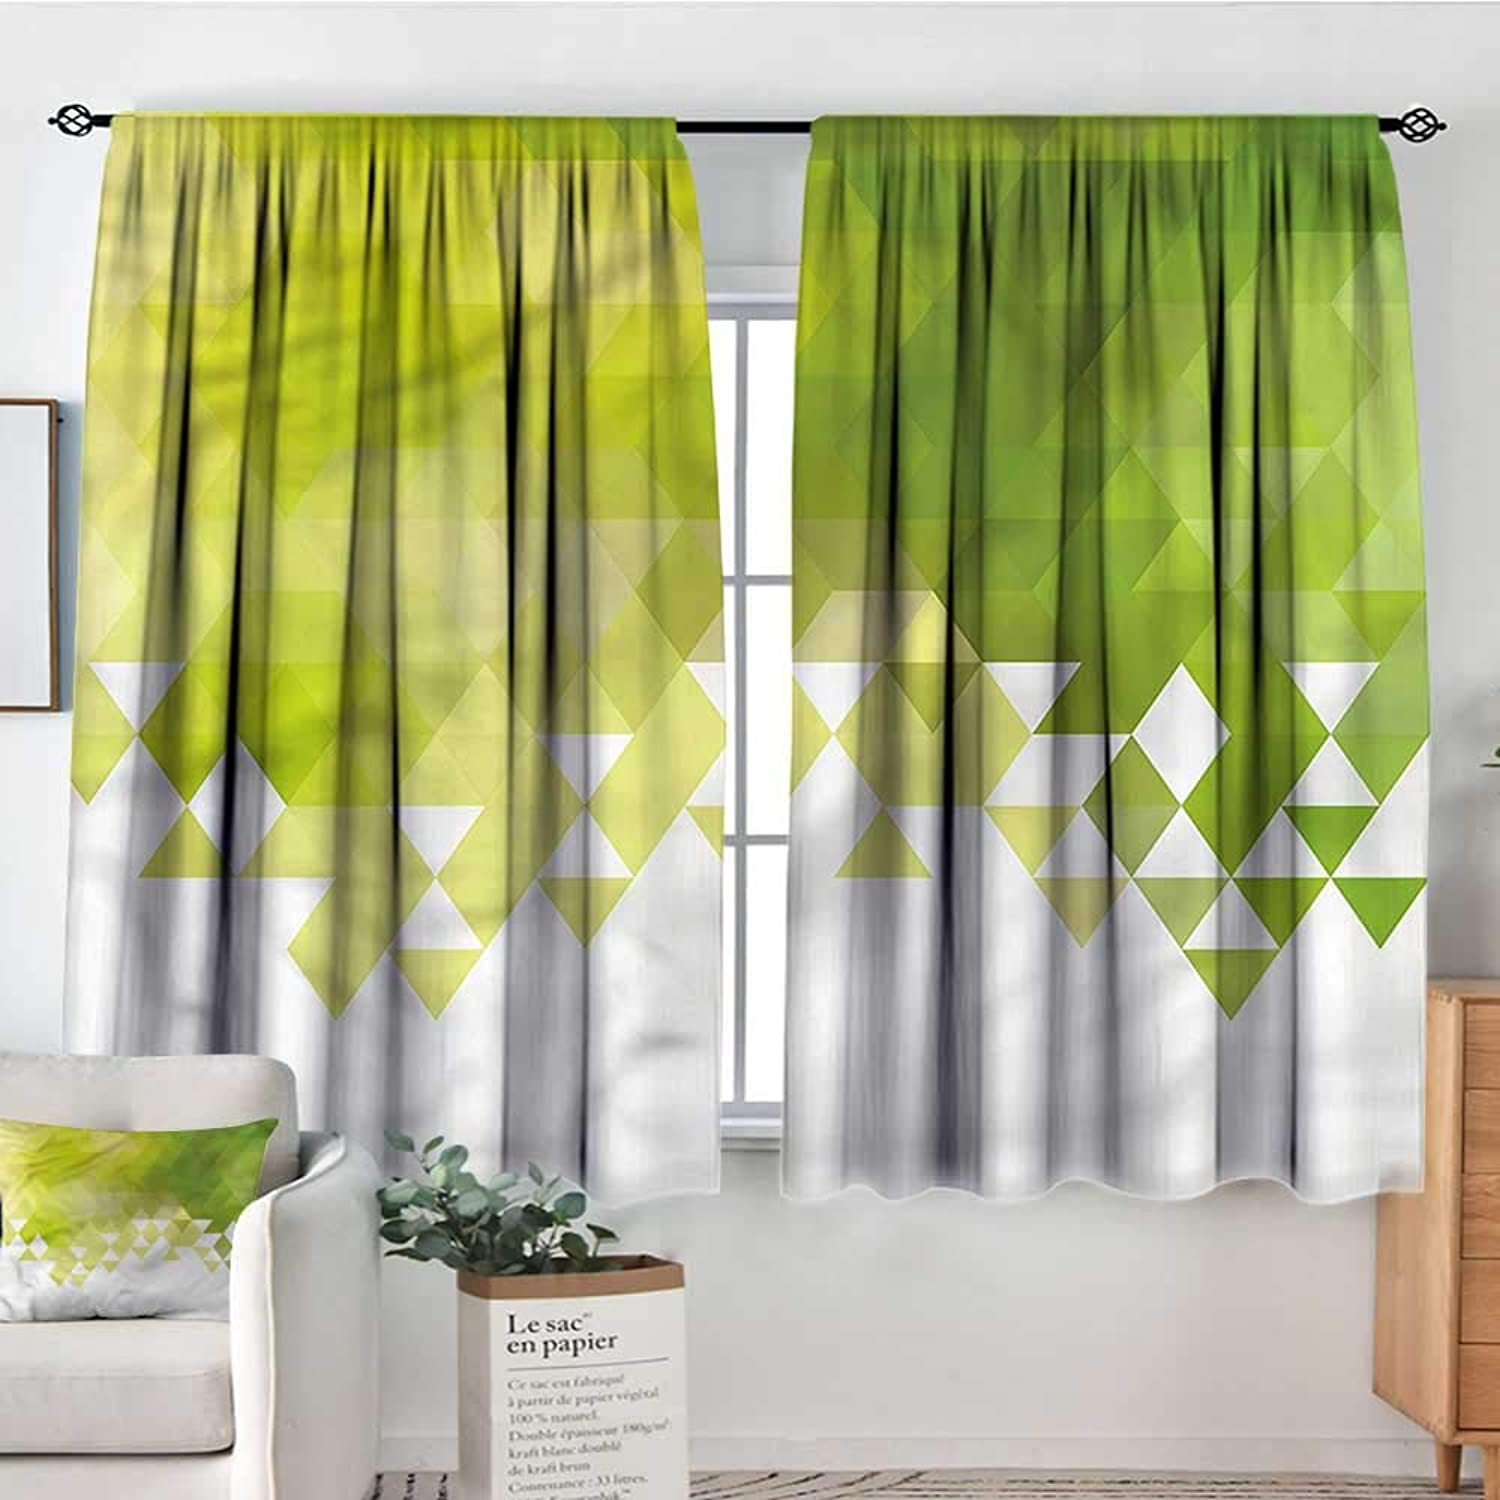 Sanring Green,Indo Panes Drapes Abstract Triangle Pattern 52 x63  Kids Backout Curtains for Bedroom